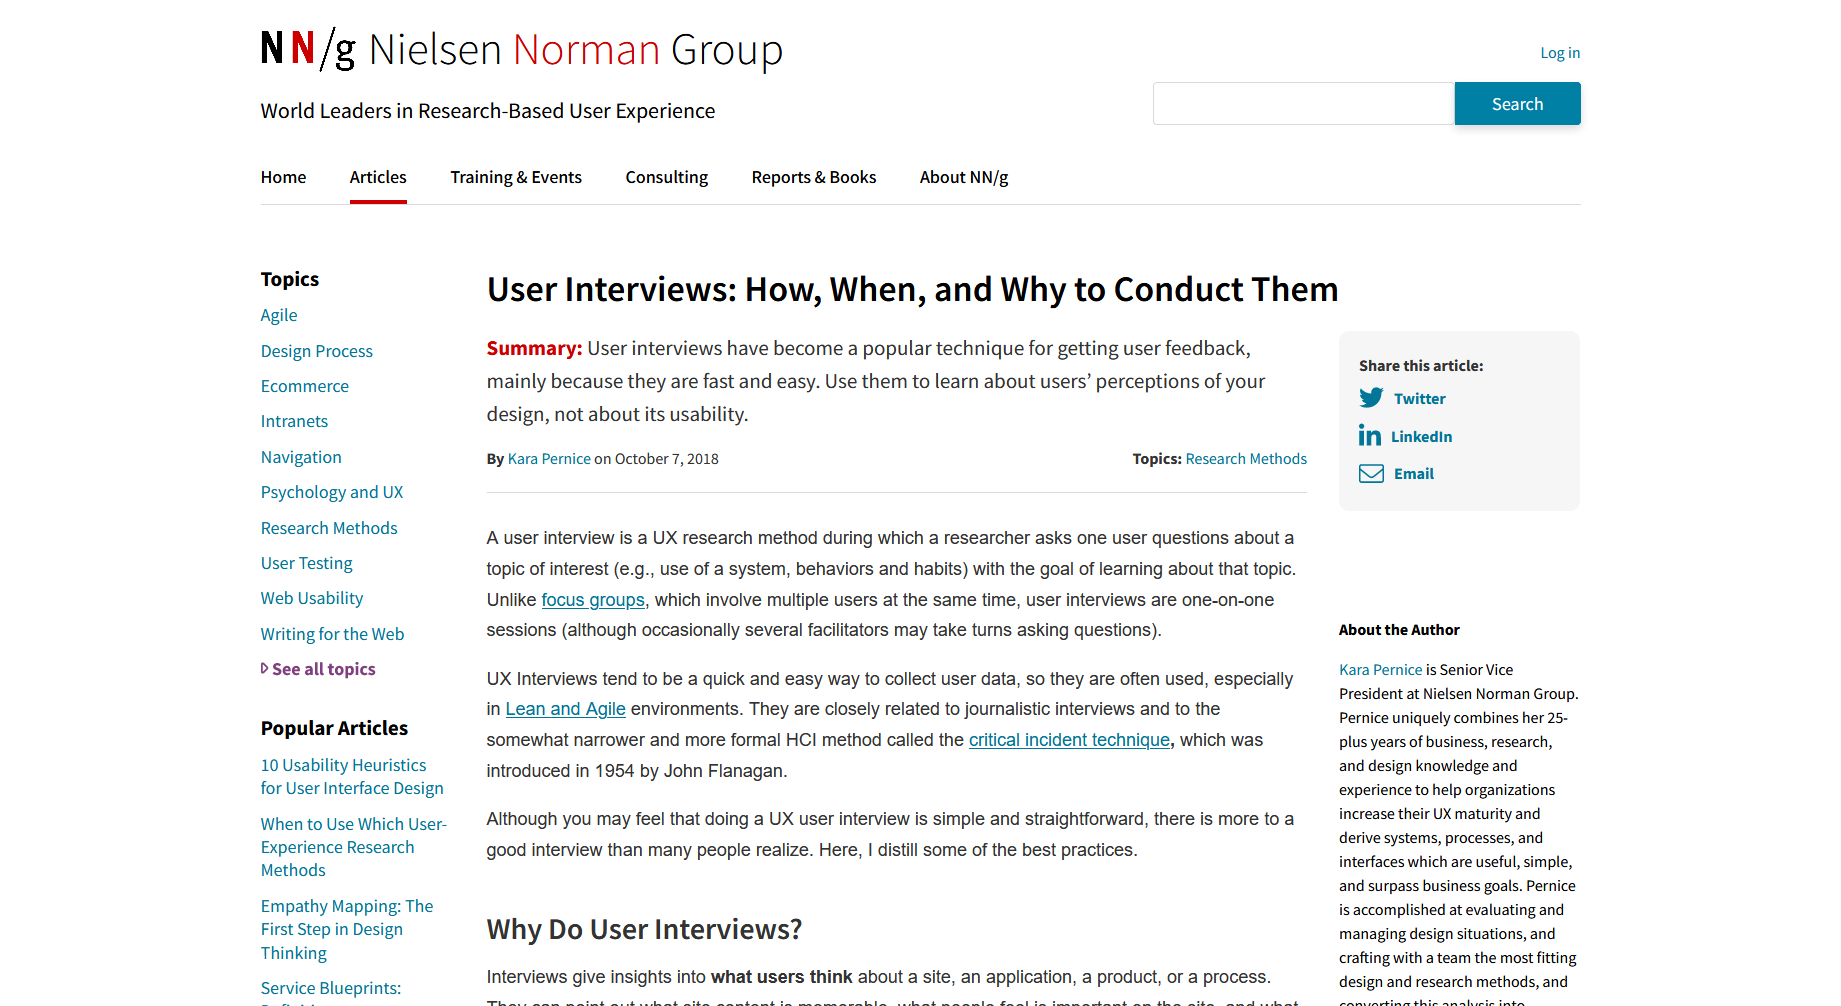 User Interviews: How, When, and Why to Conduct Them — NN/g